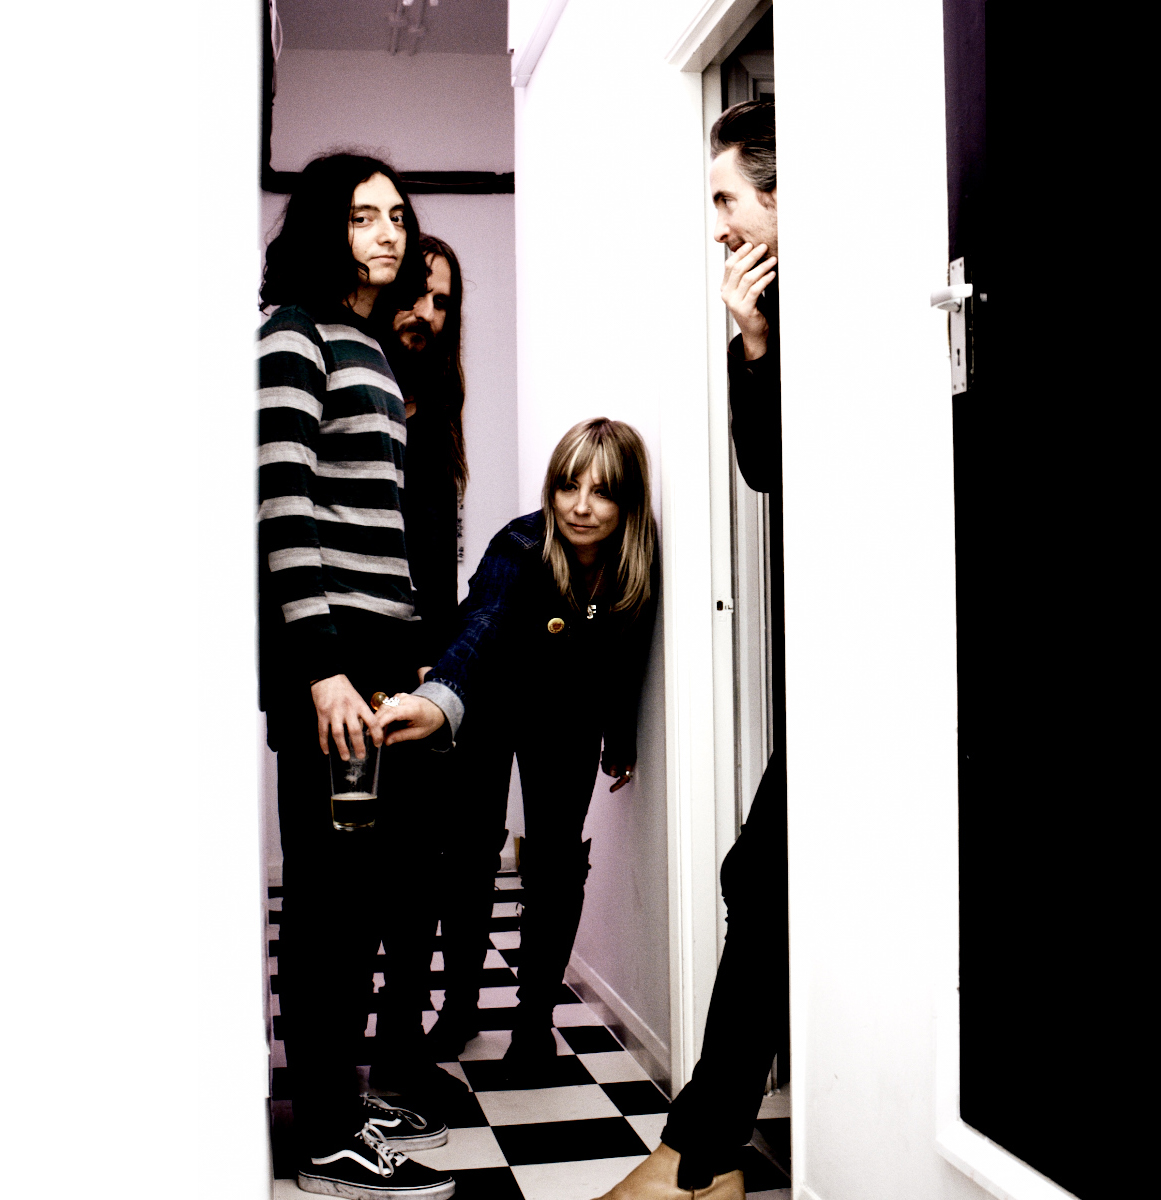 black helium (photo by Steve Gullick)